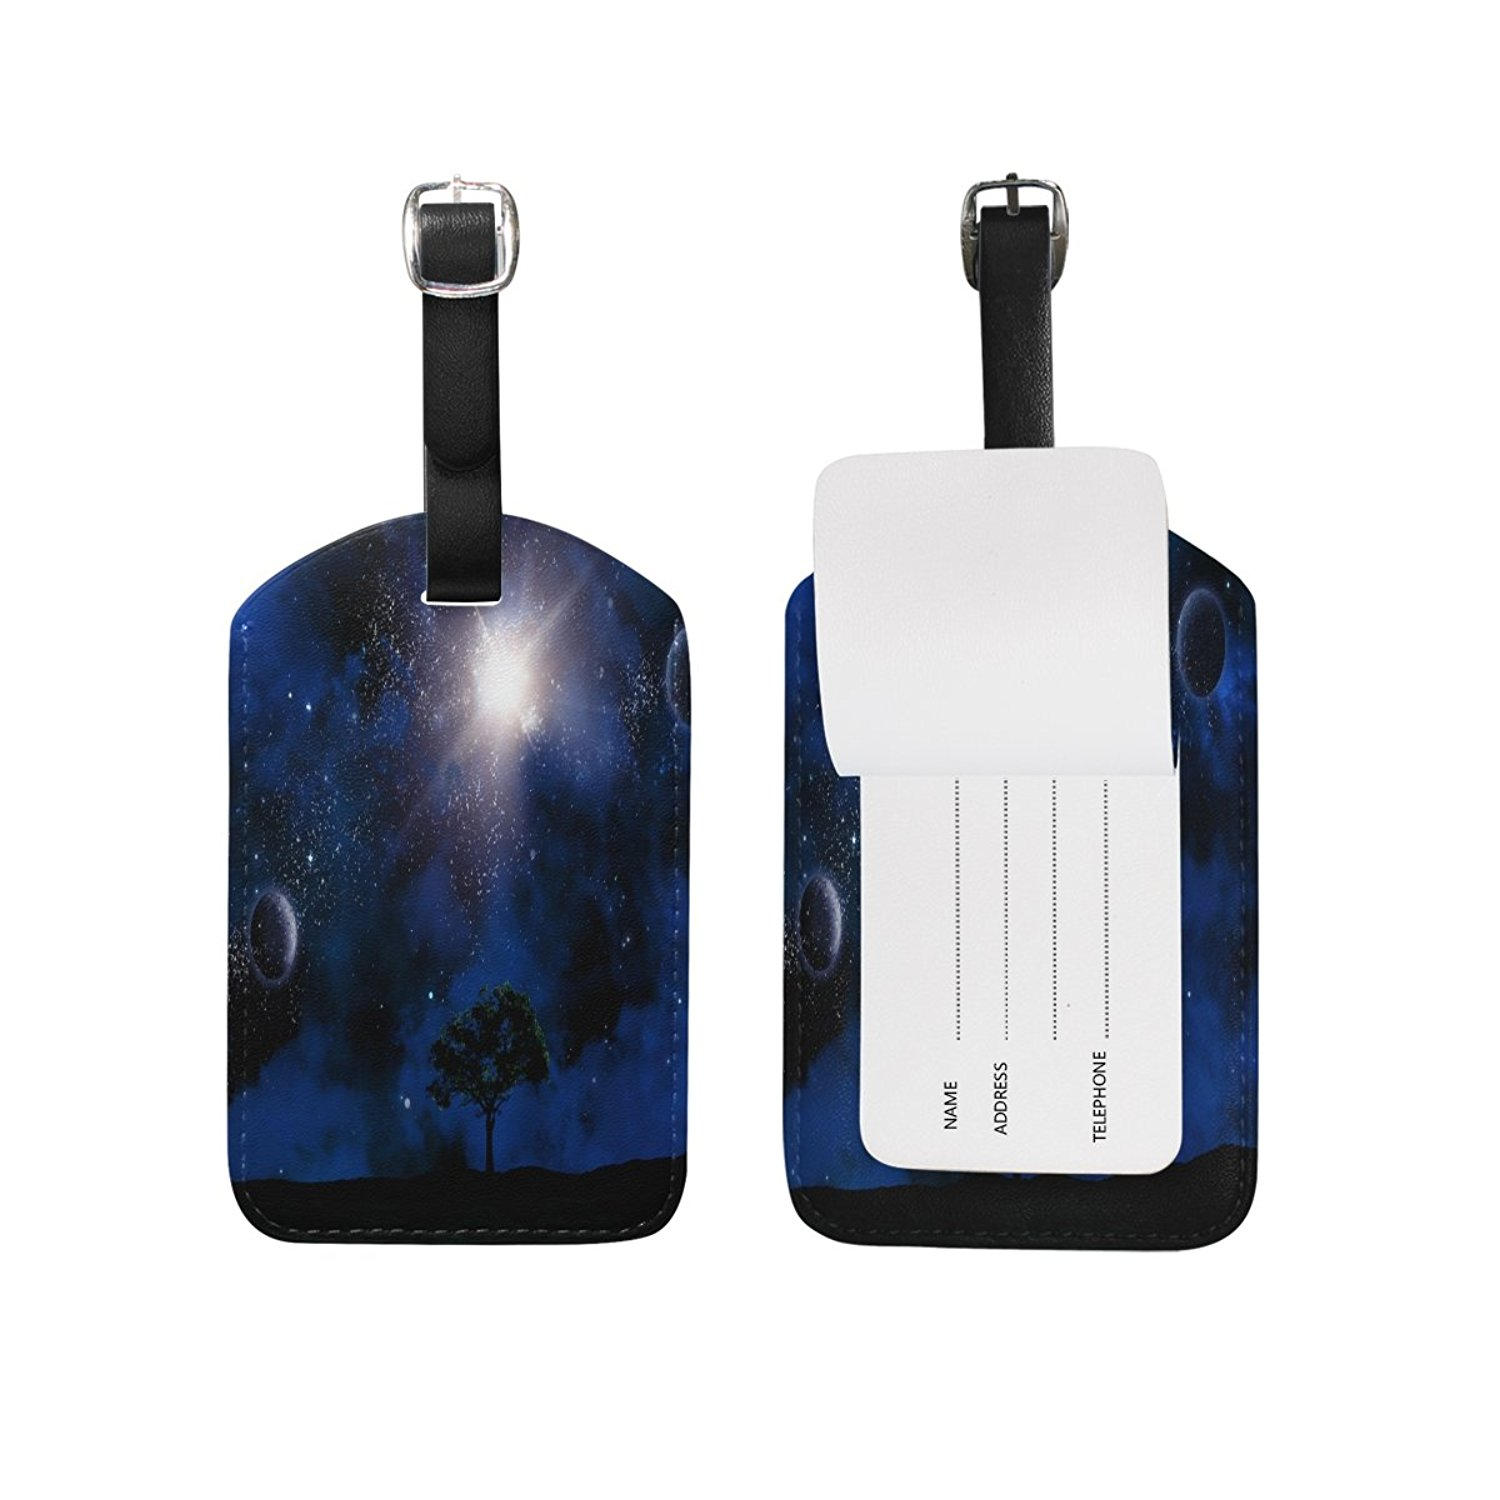 Saobao Travel Luggage Tag Spaceship In The Universe PU Leather Baggage Suitcase Travel ID Bag Tag 1Pcs